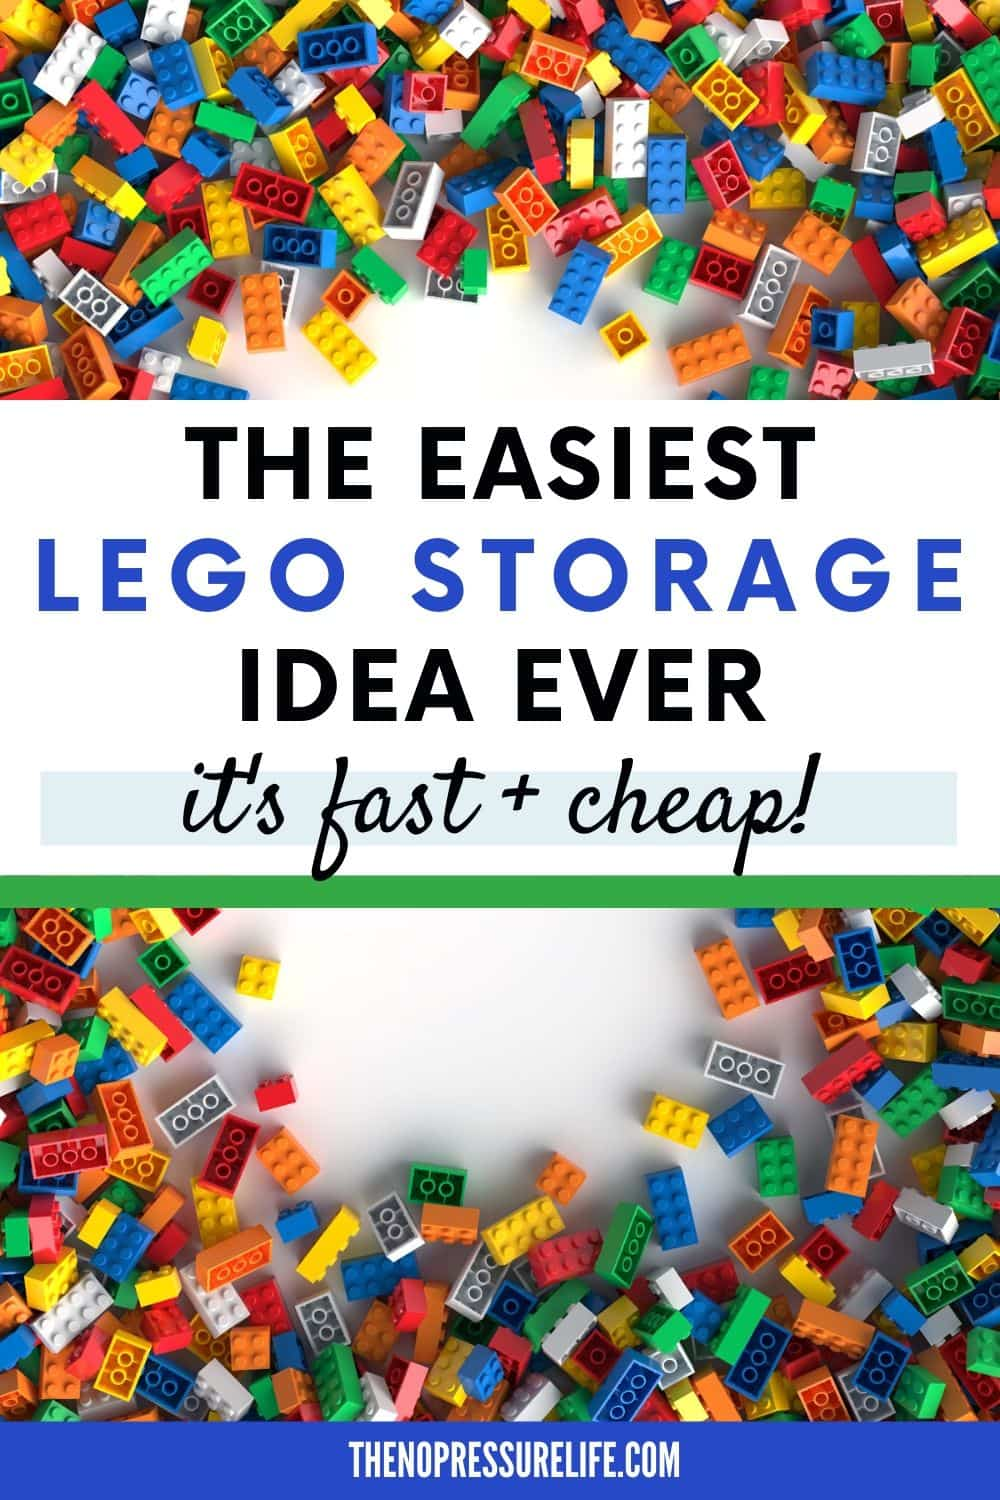 """Pile of LEGO bricks on white background and text overlay: """"The Easiest LEGO Storage Idea Ever - Fast and Cheap"""""""